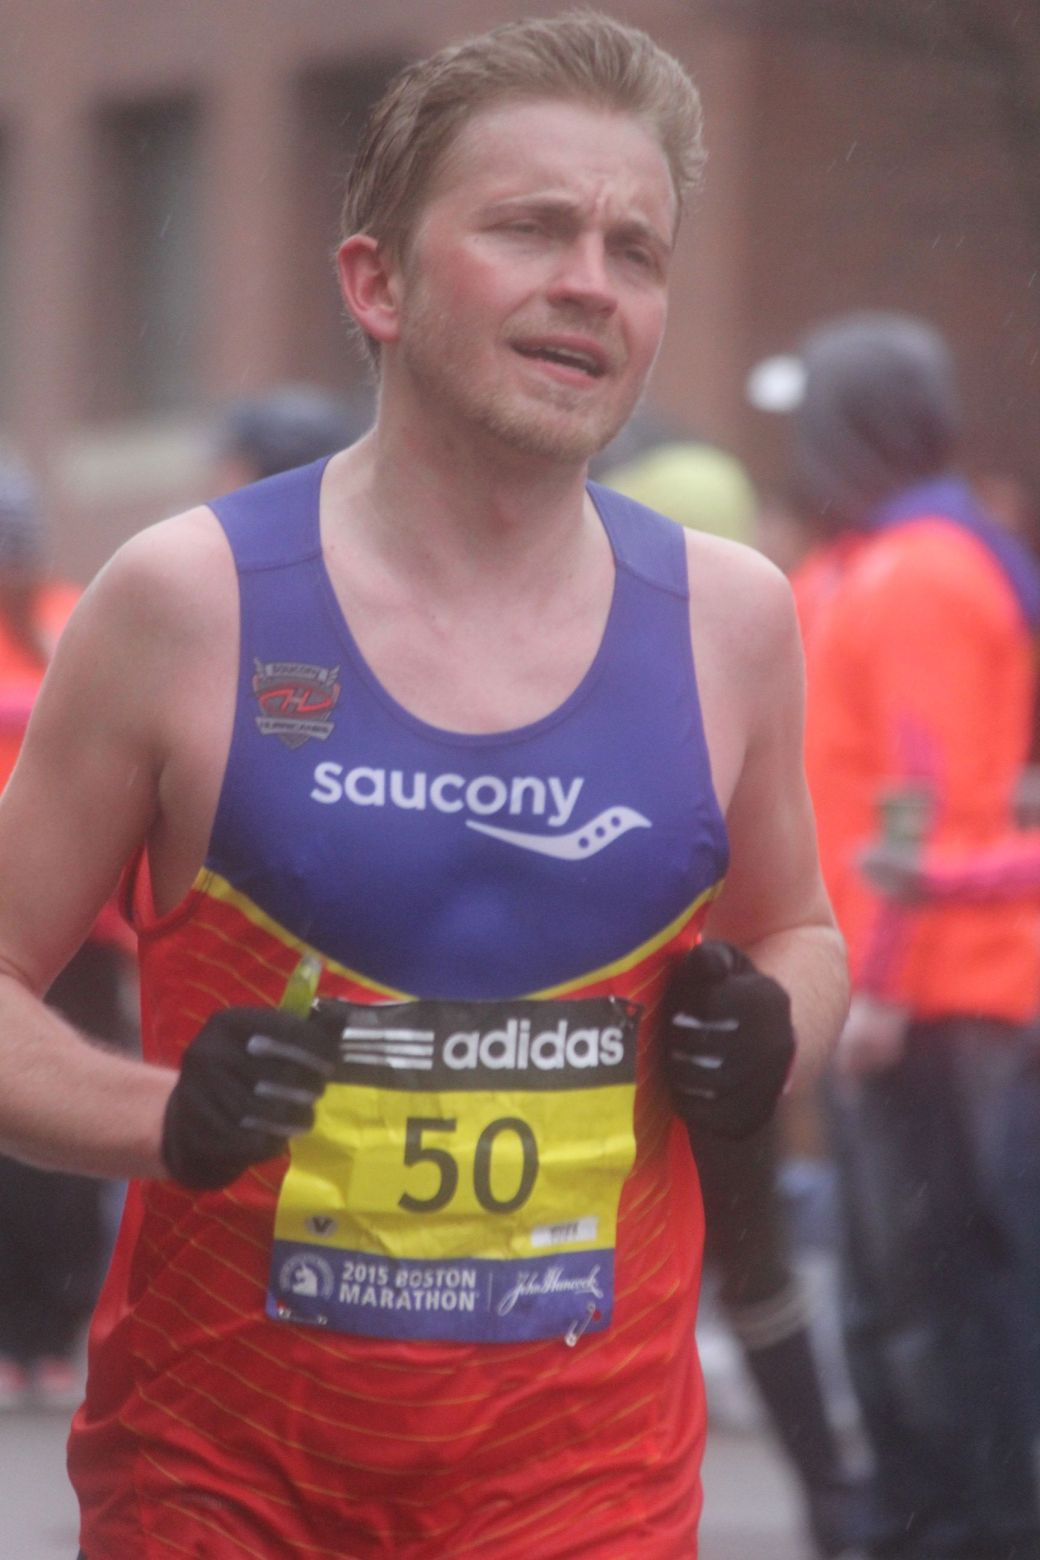 boston marathon april 20 2015 racer number 50